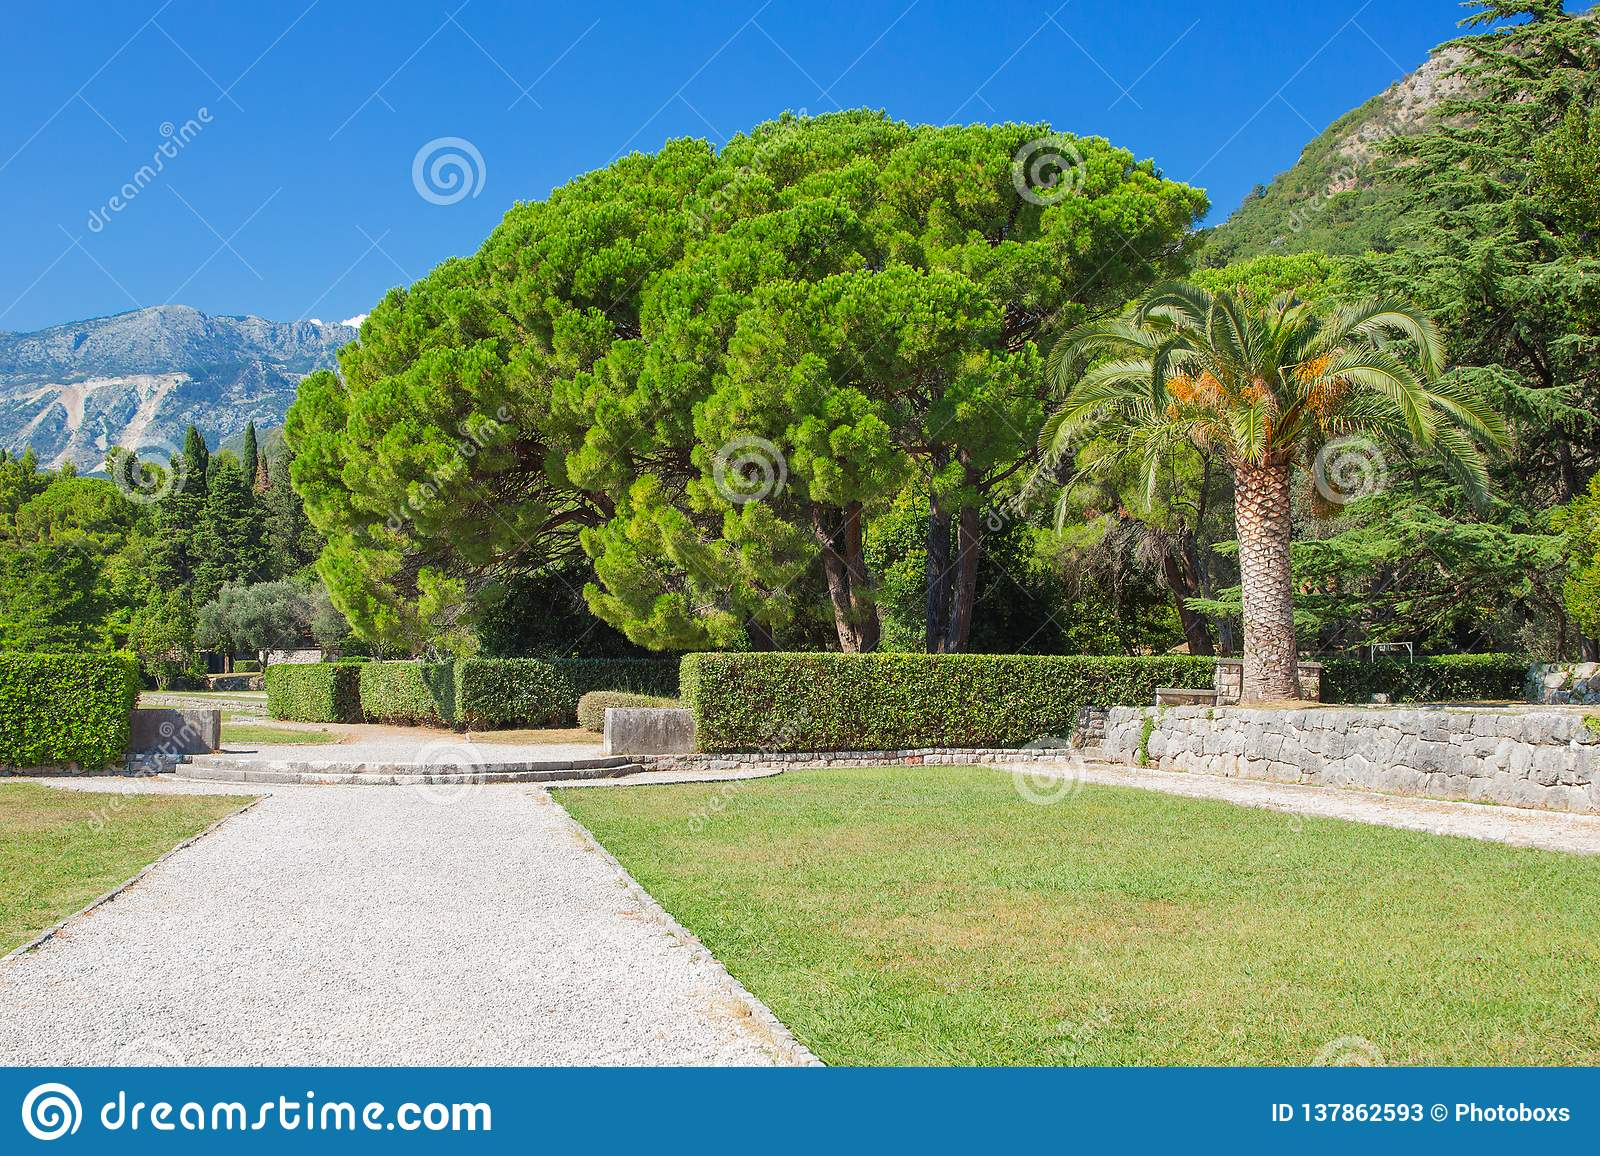 Park green area with a path of rubble and a lush variety of vegetation and mountains in the background